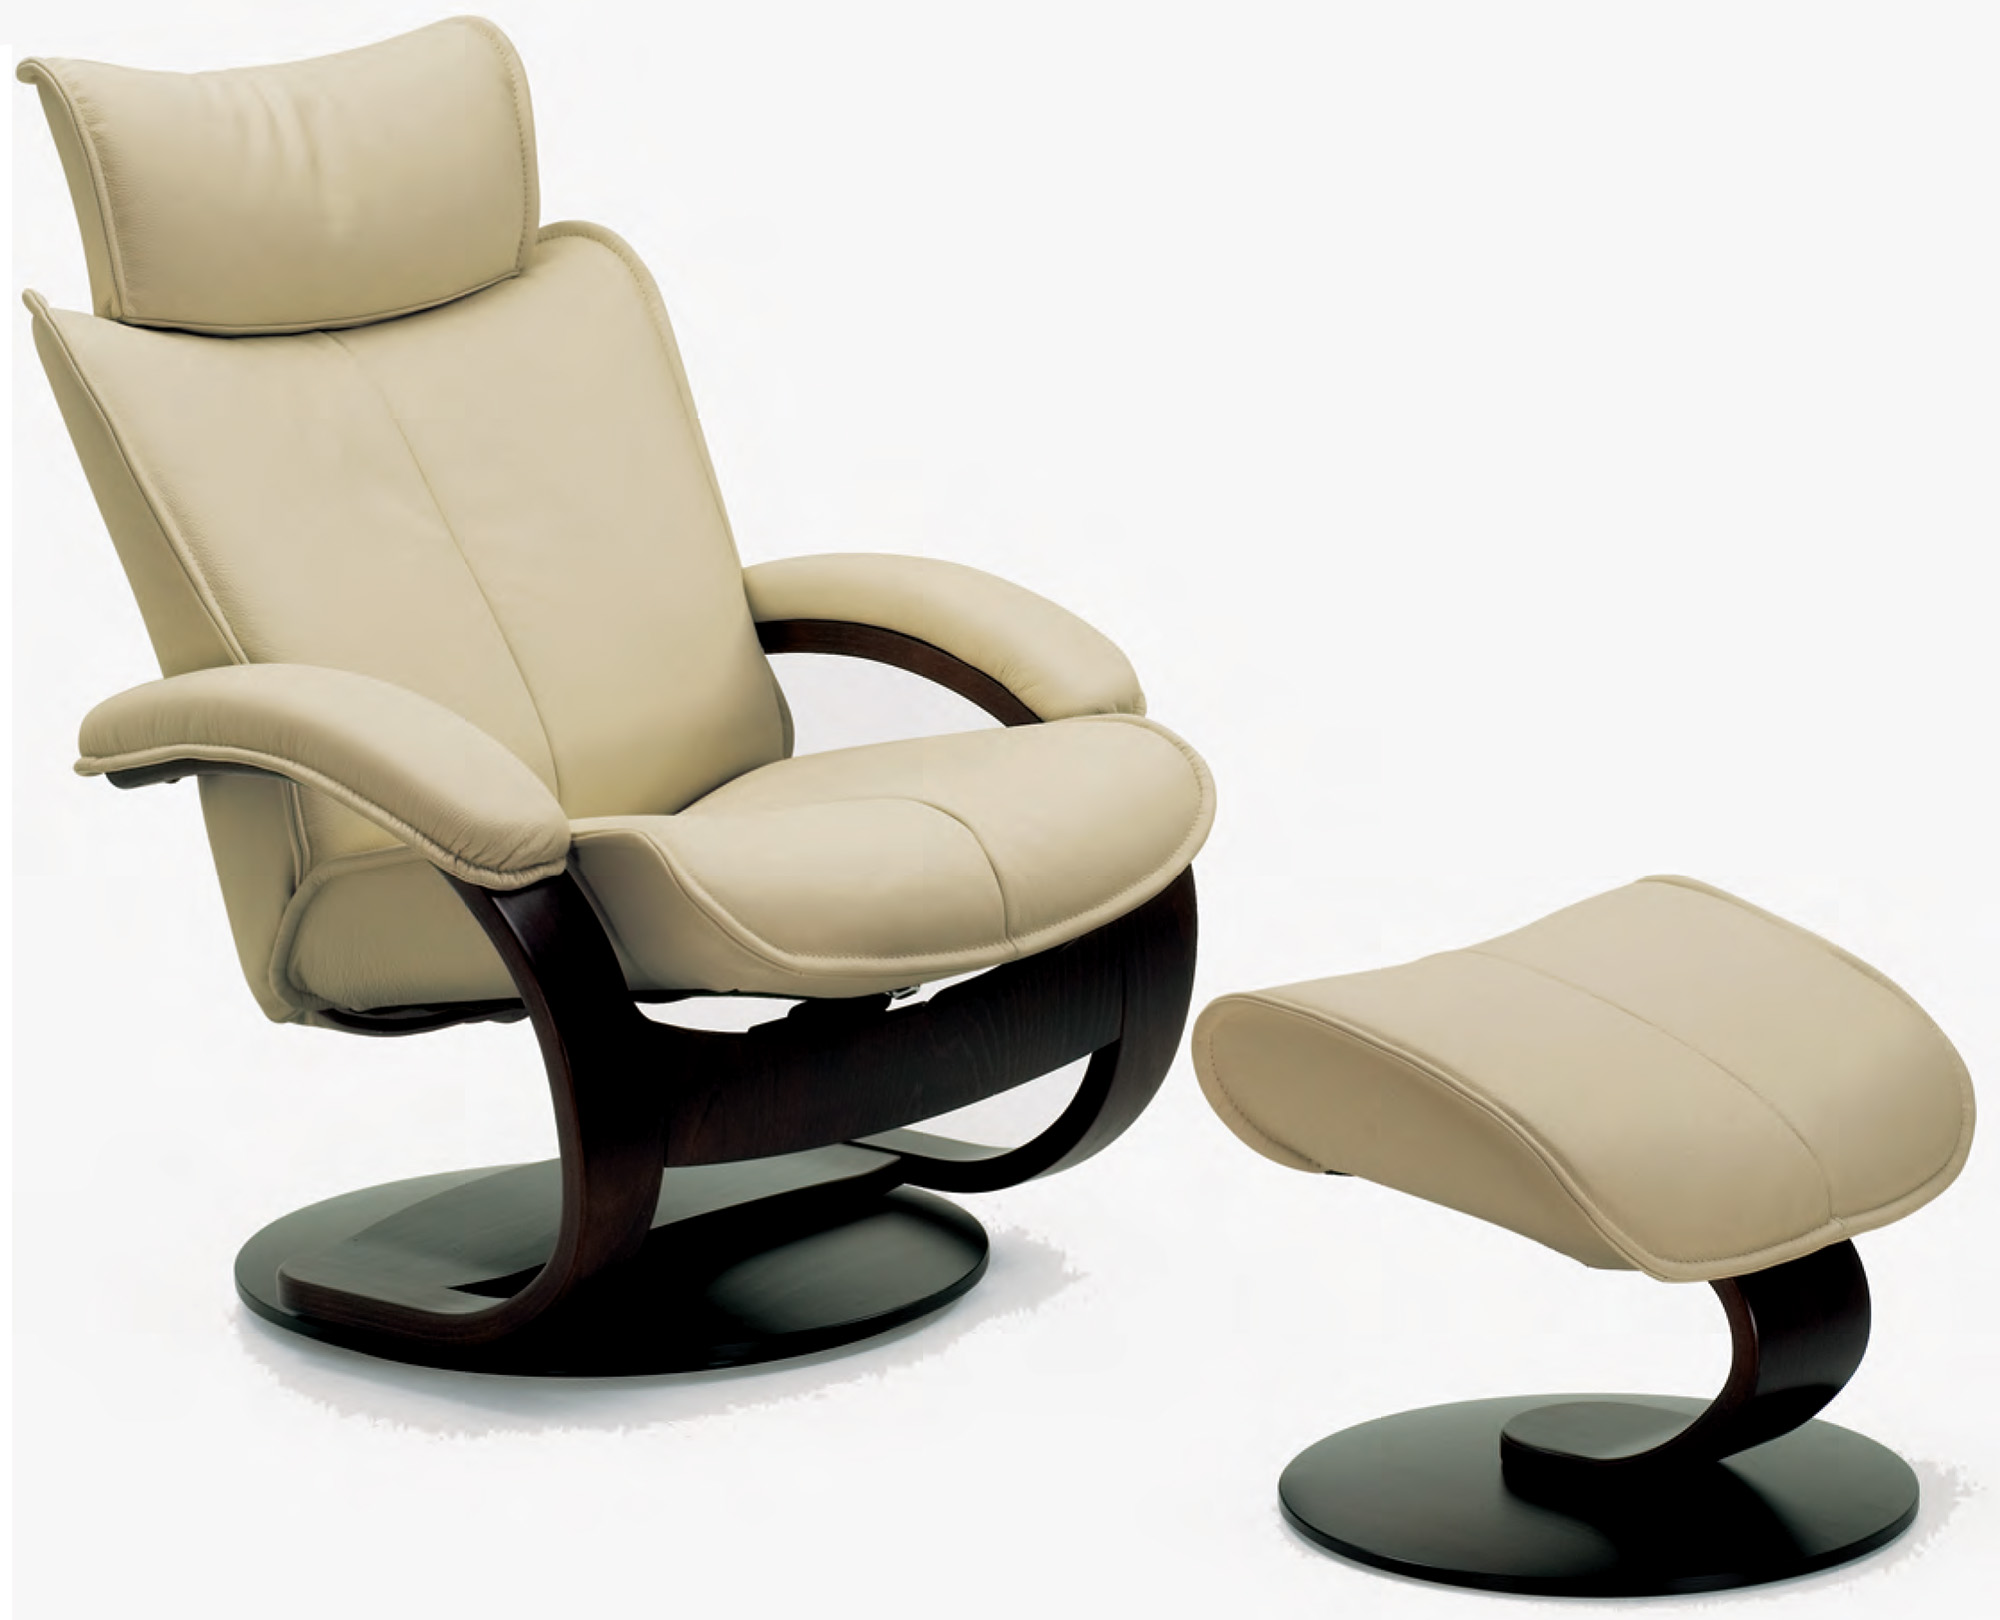 Wonderful Fjords Ona Ergonomic Leather Recliner Chair And Ottoman Scandinavian Lounger